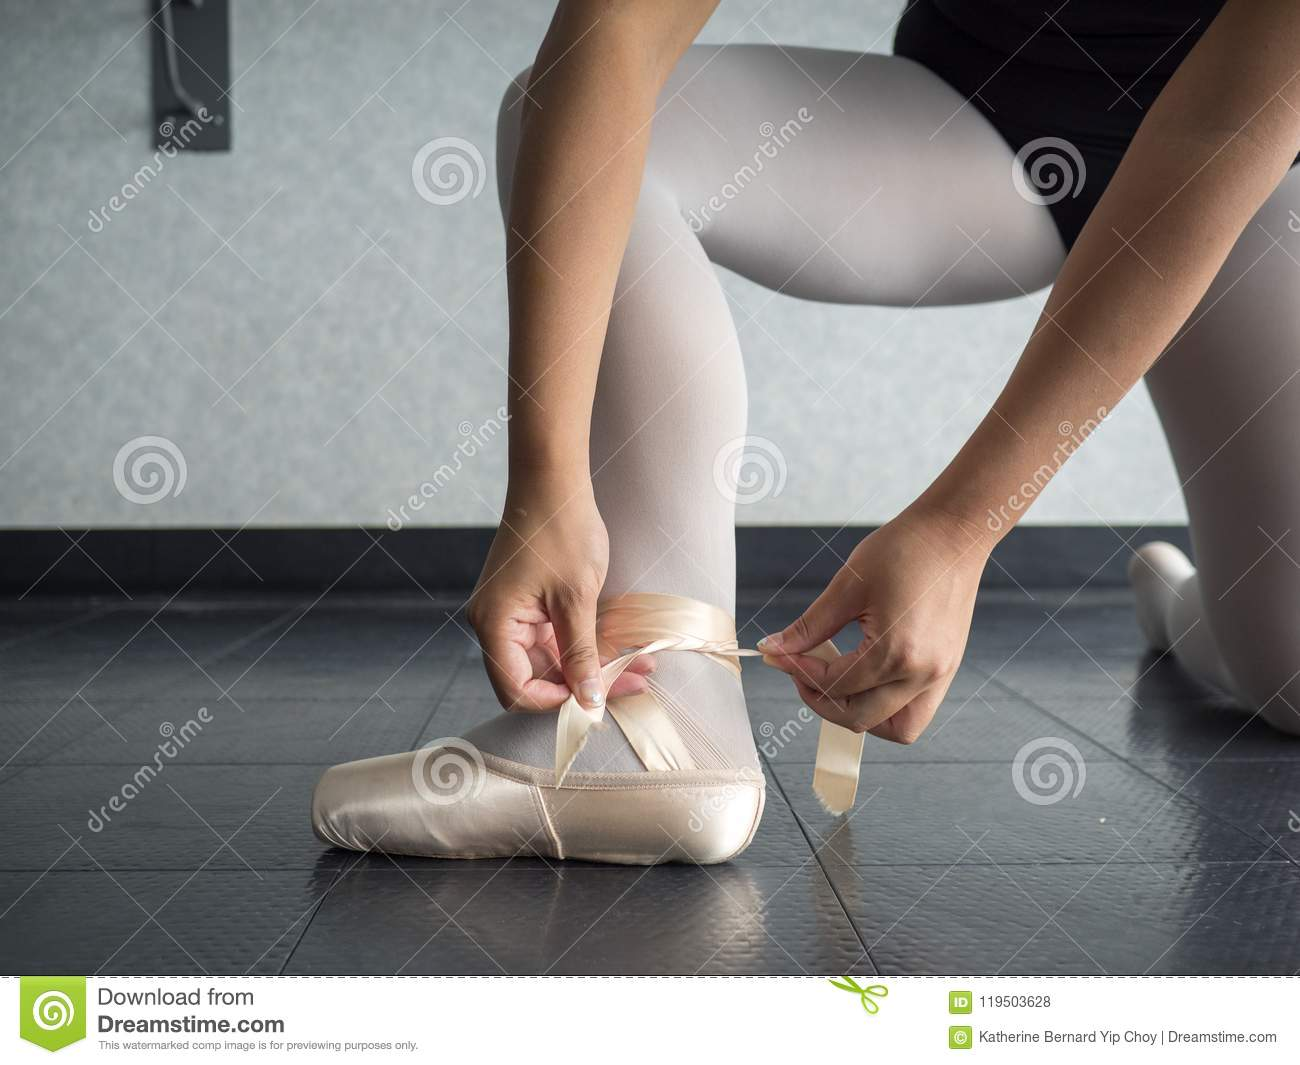 Recreational young female ballet dancer ballerina, in the studio putting on her pointe shoes, tying up